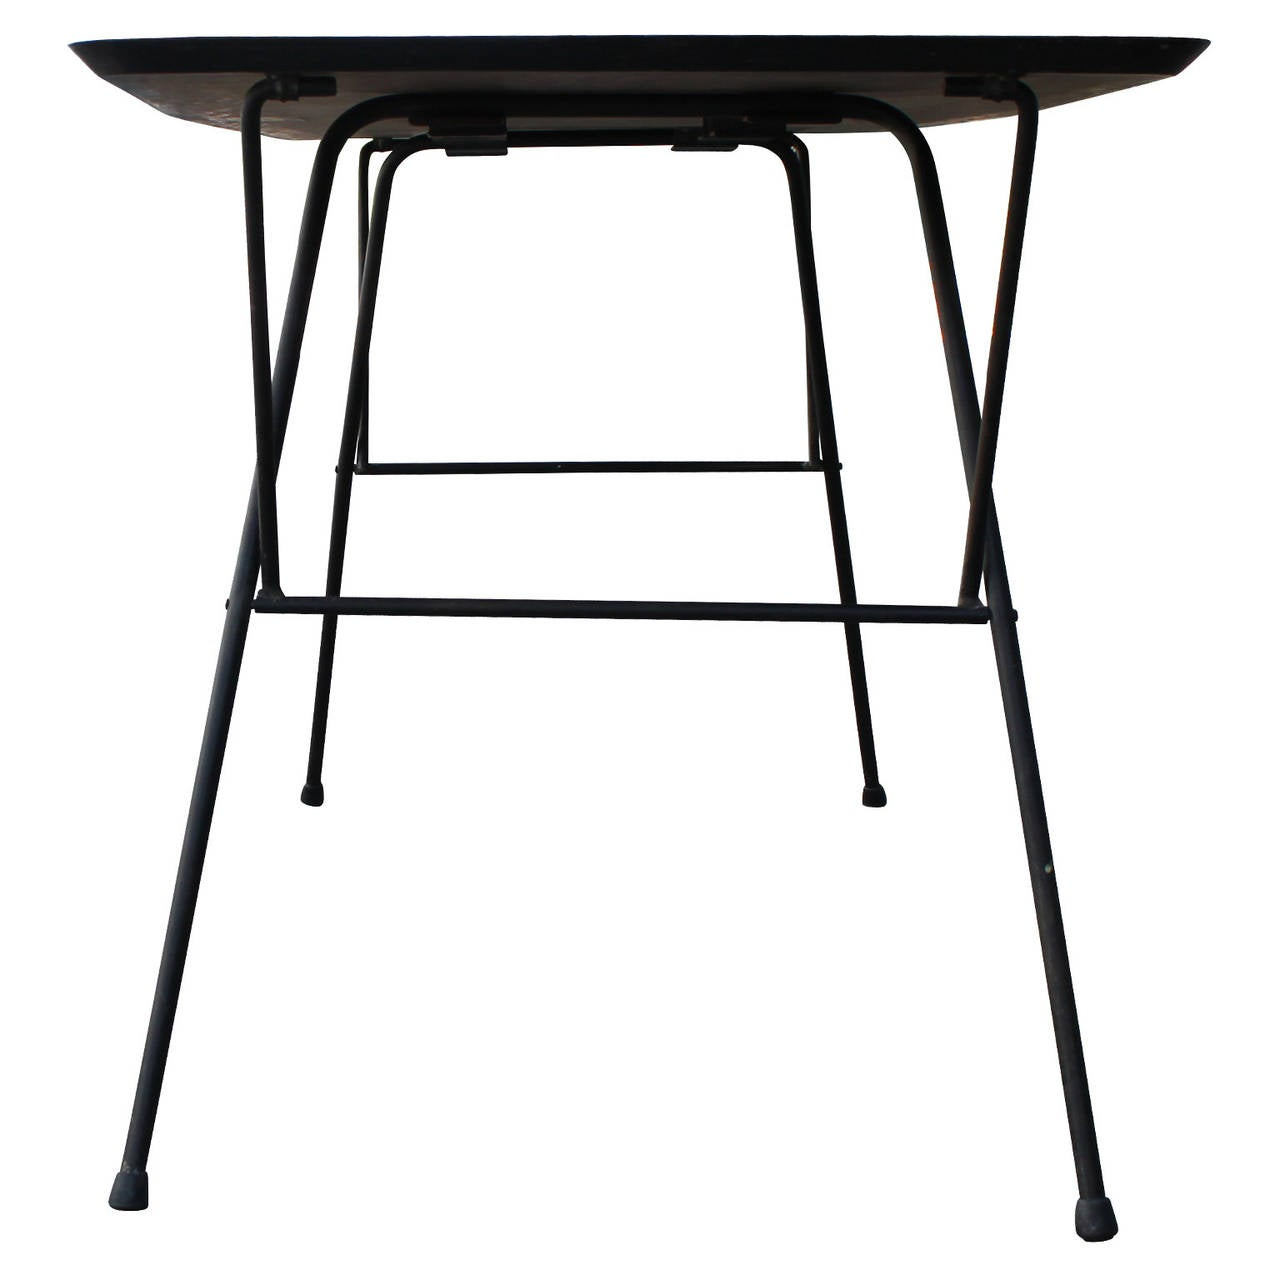 Versi Table By Tepper Meyer For Fred Meyer At 1stdibs